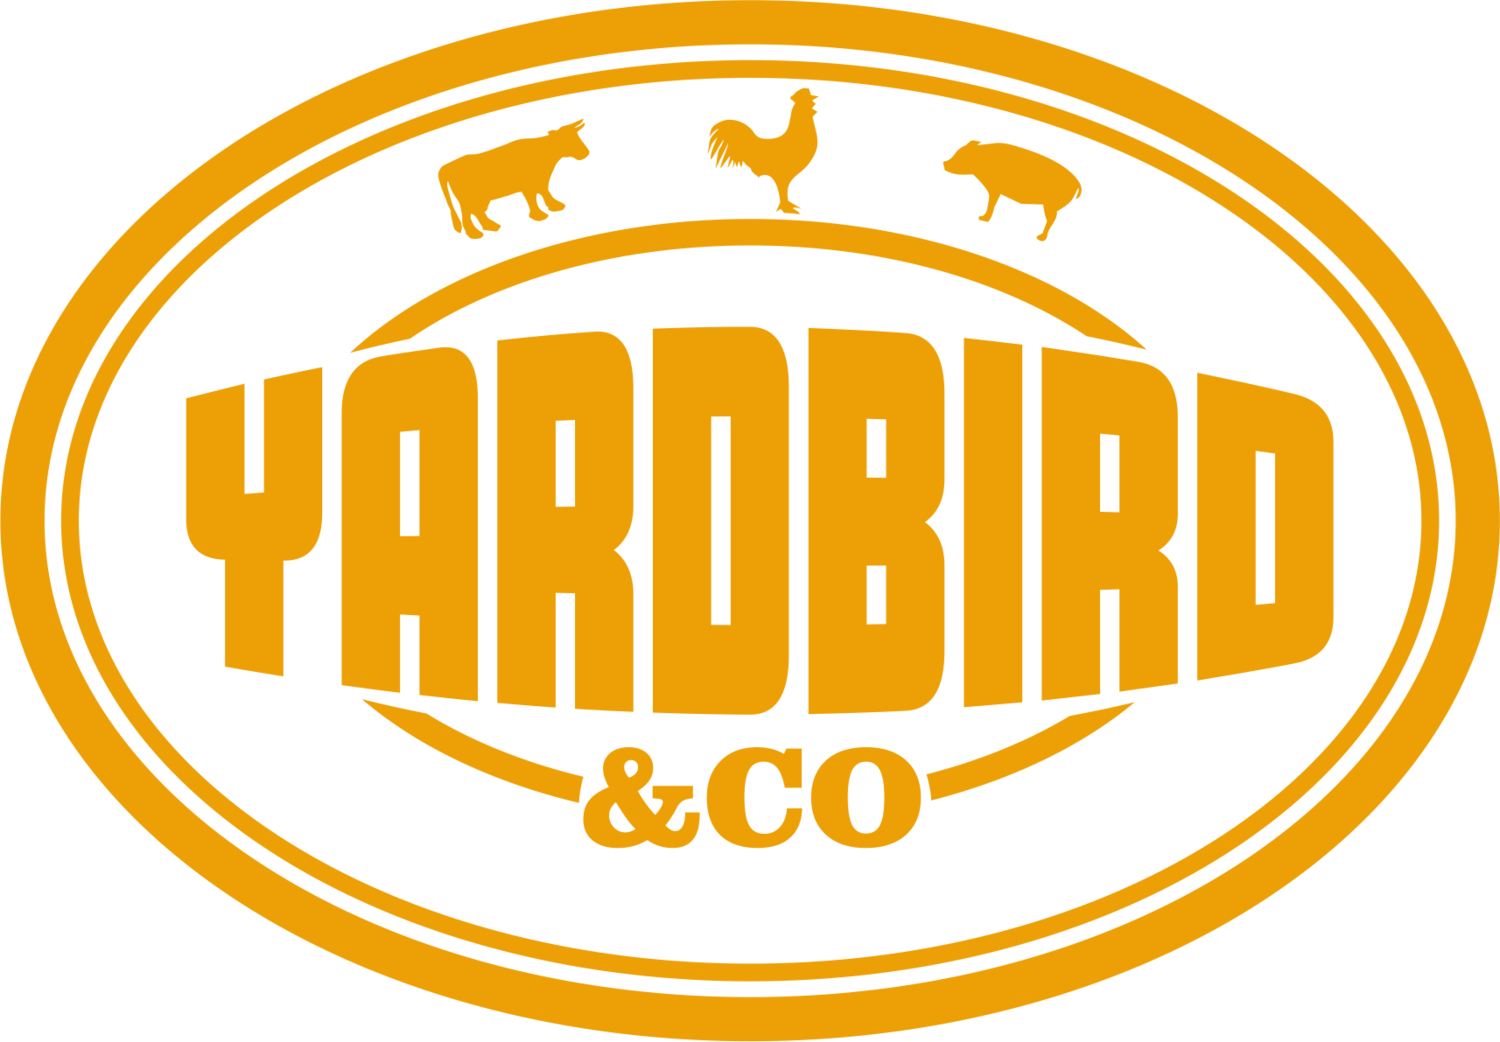 Yardbird and Co